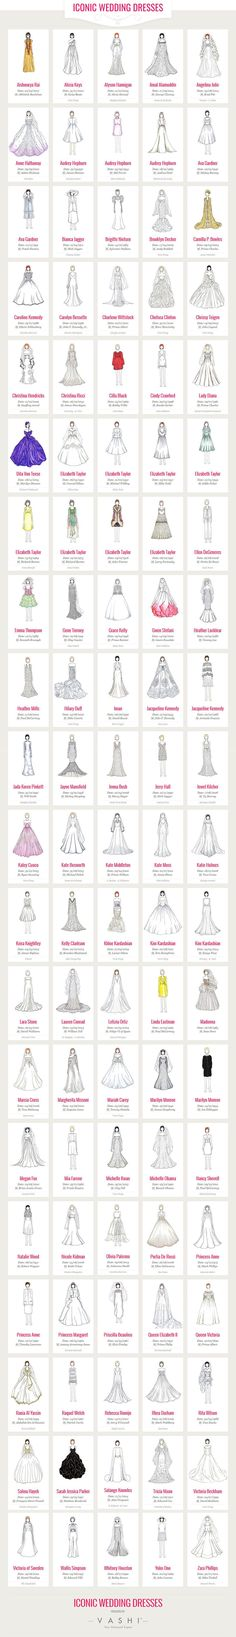 Maiores icones de vestidos de noiva | #wedding #dress